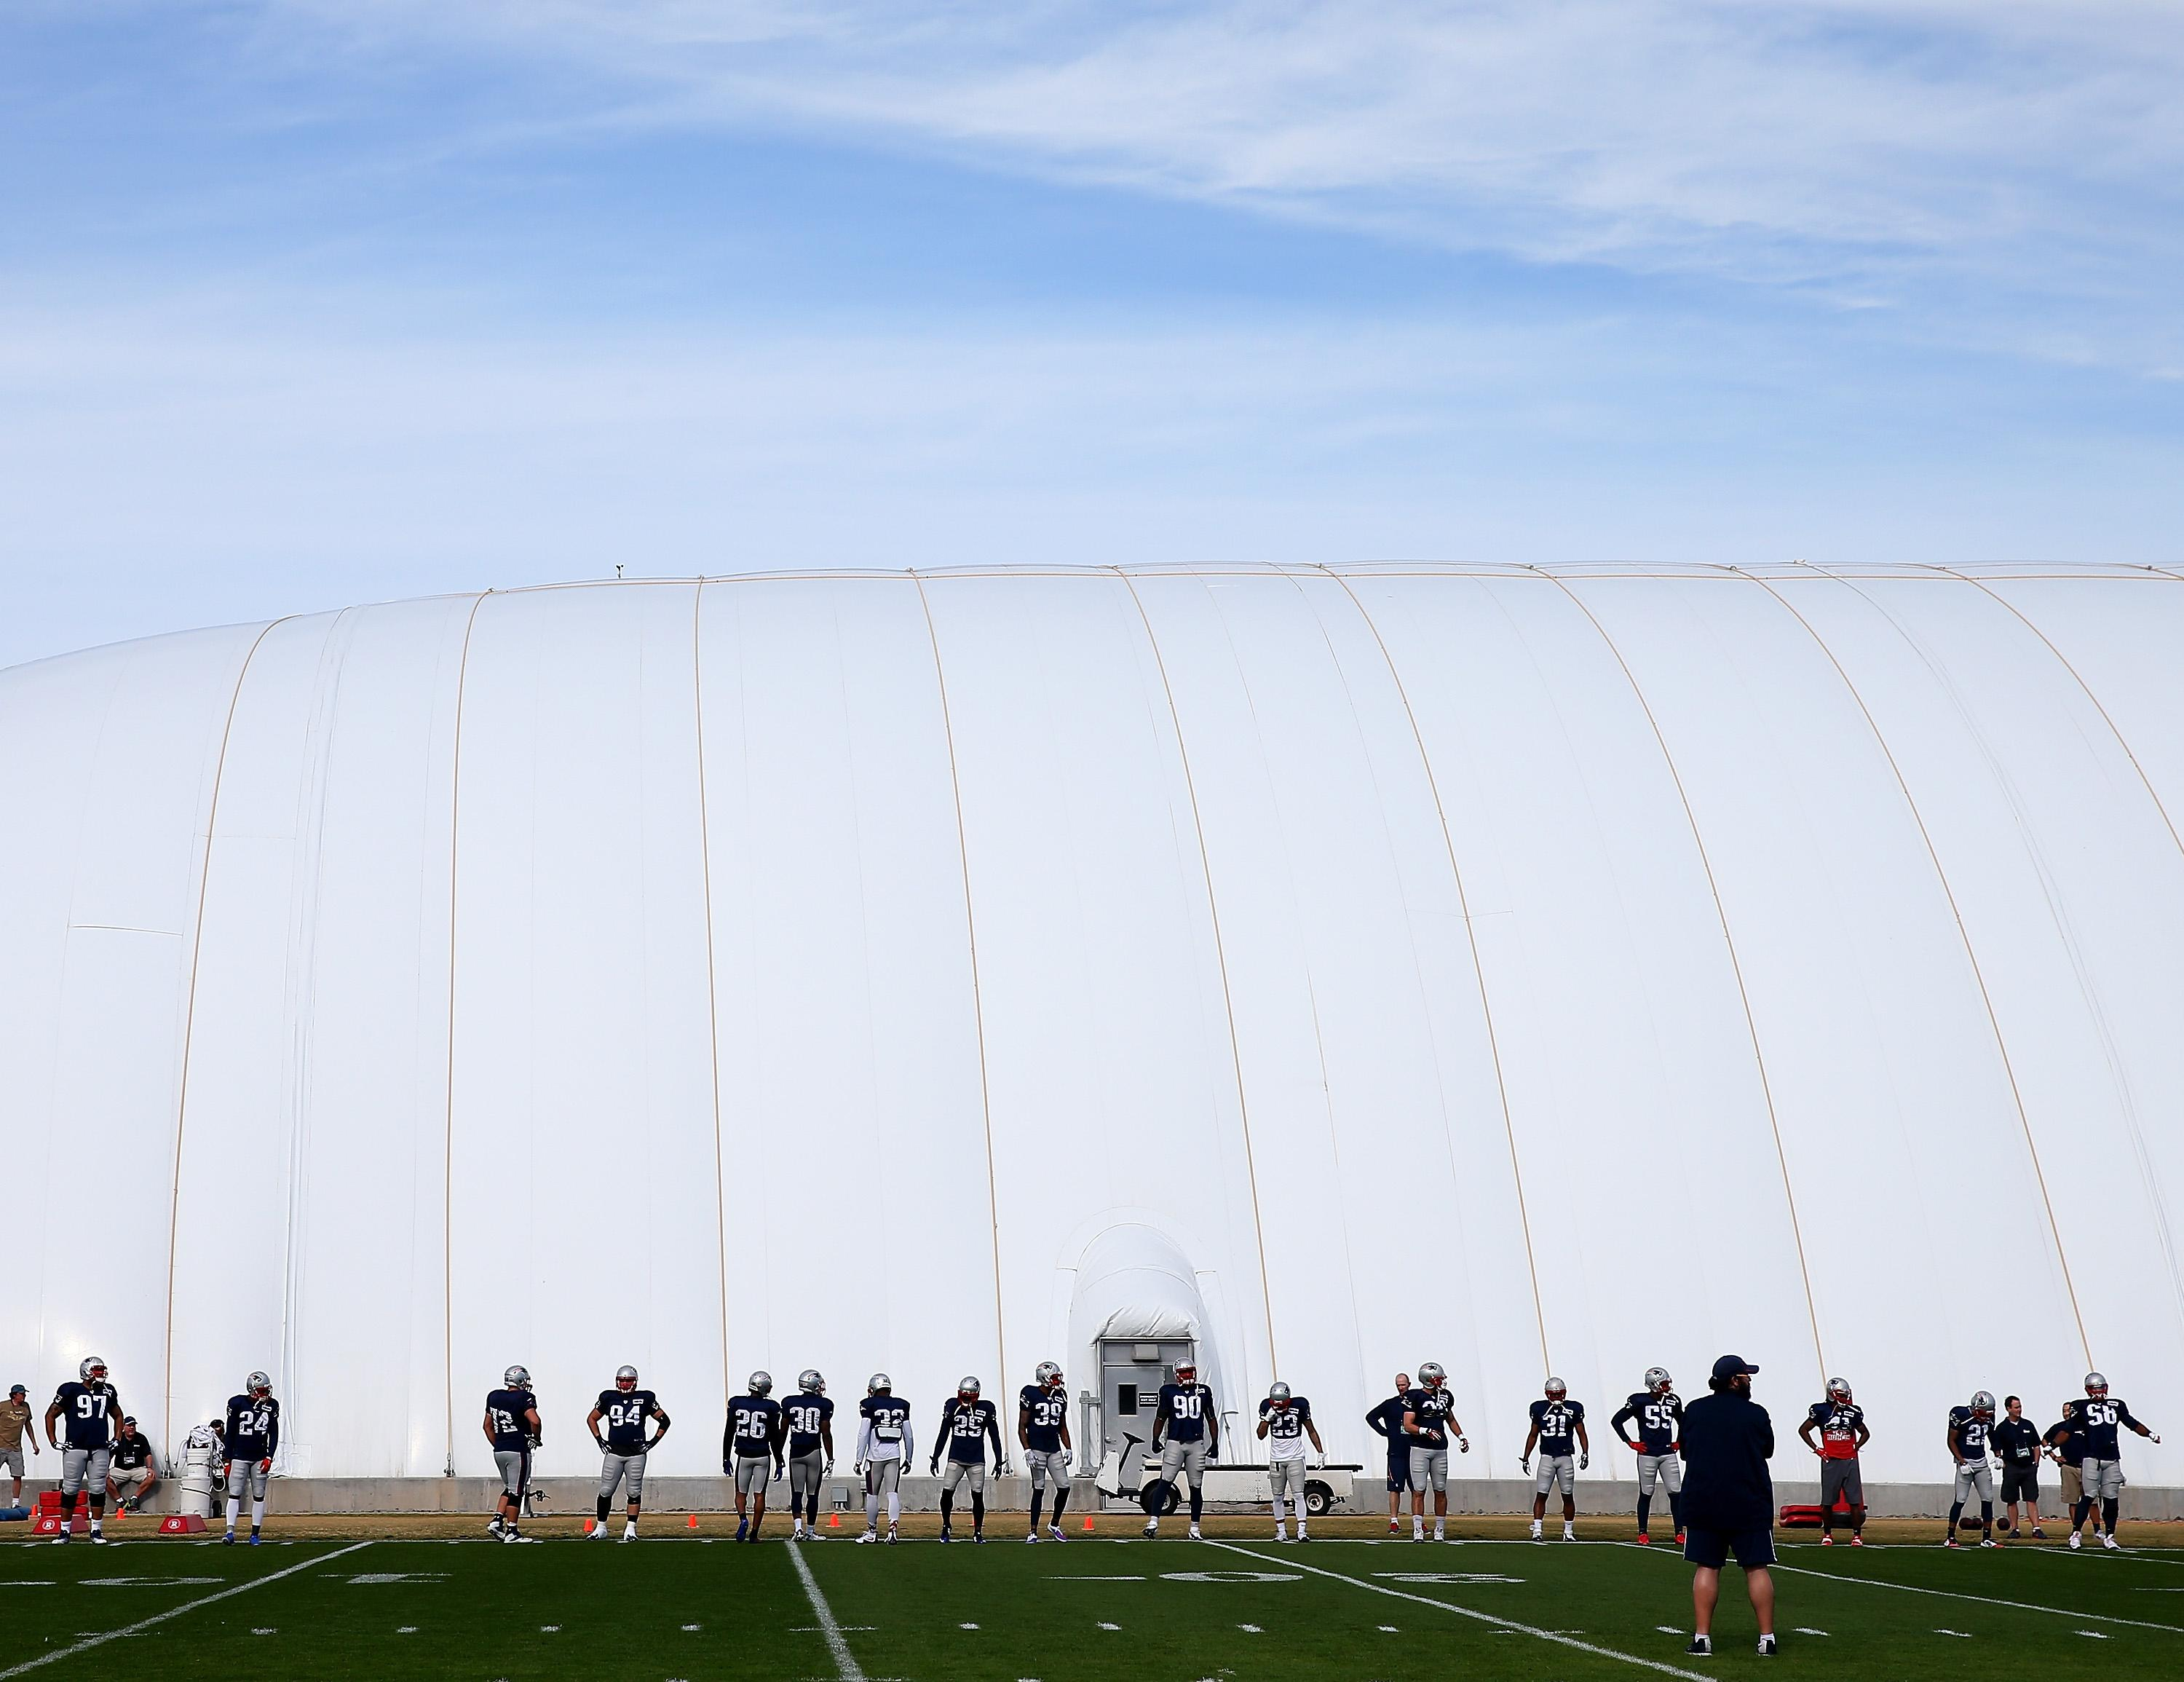 Security officials confident in Super Bowl safety